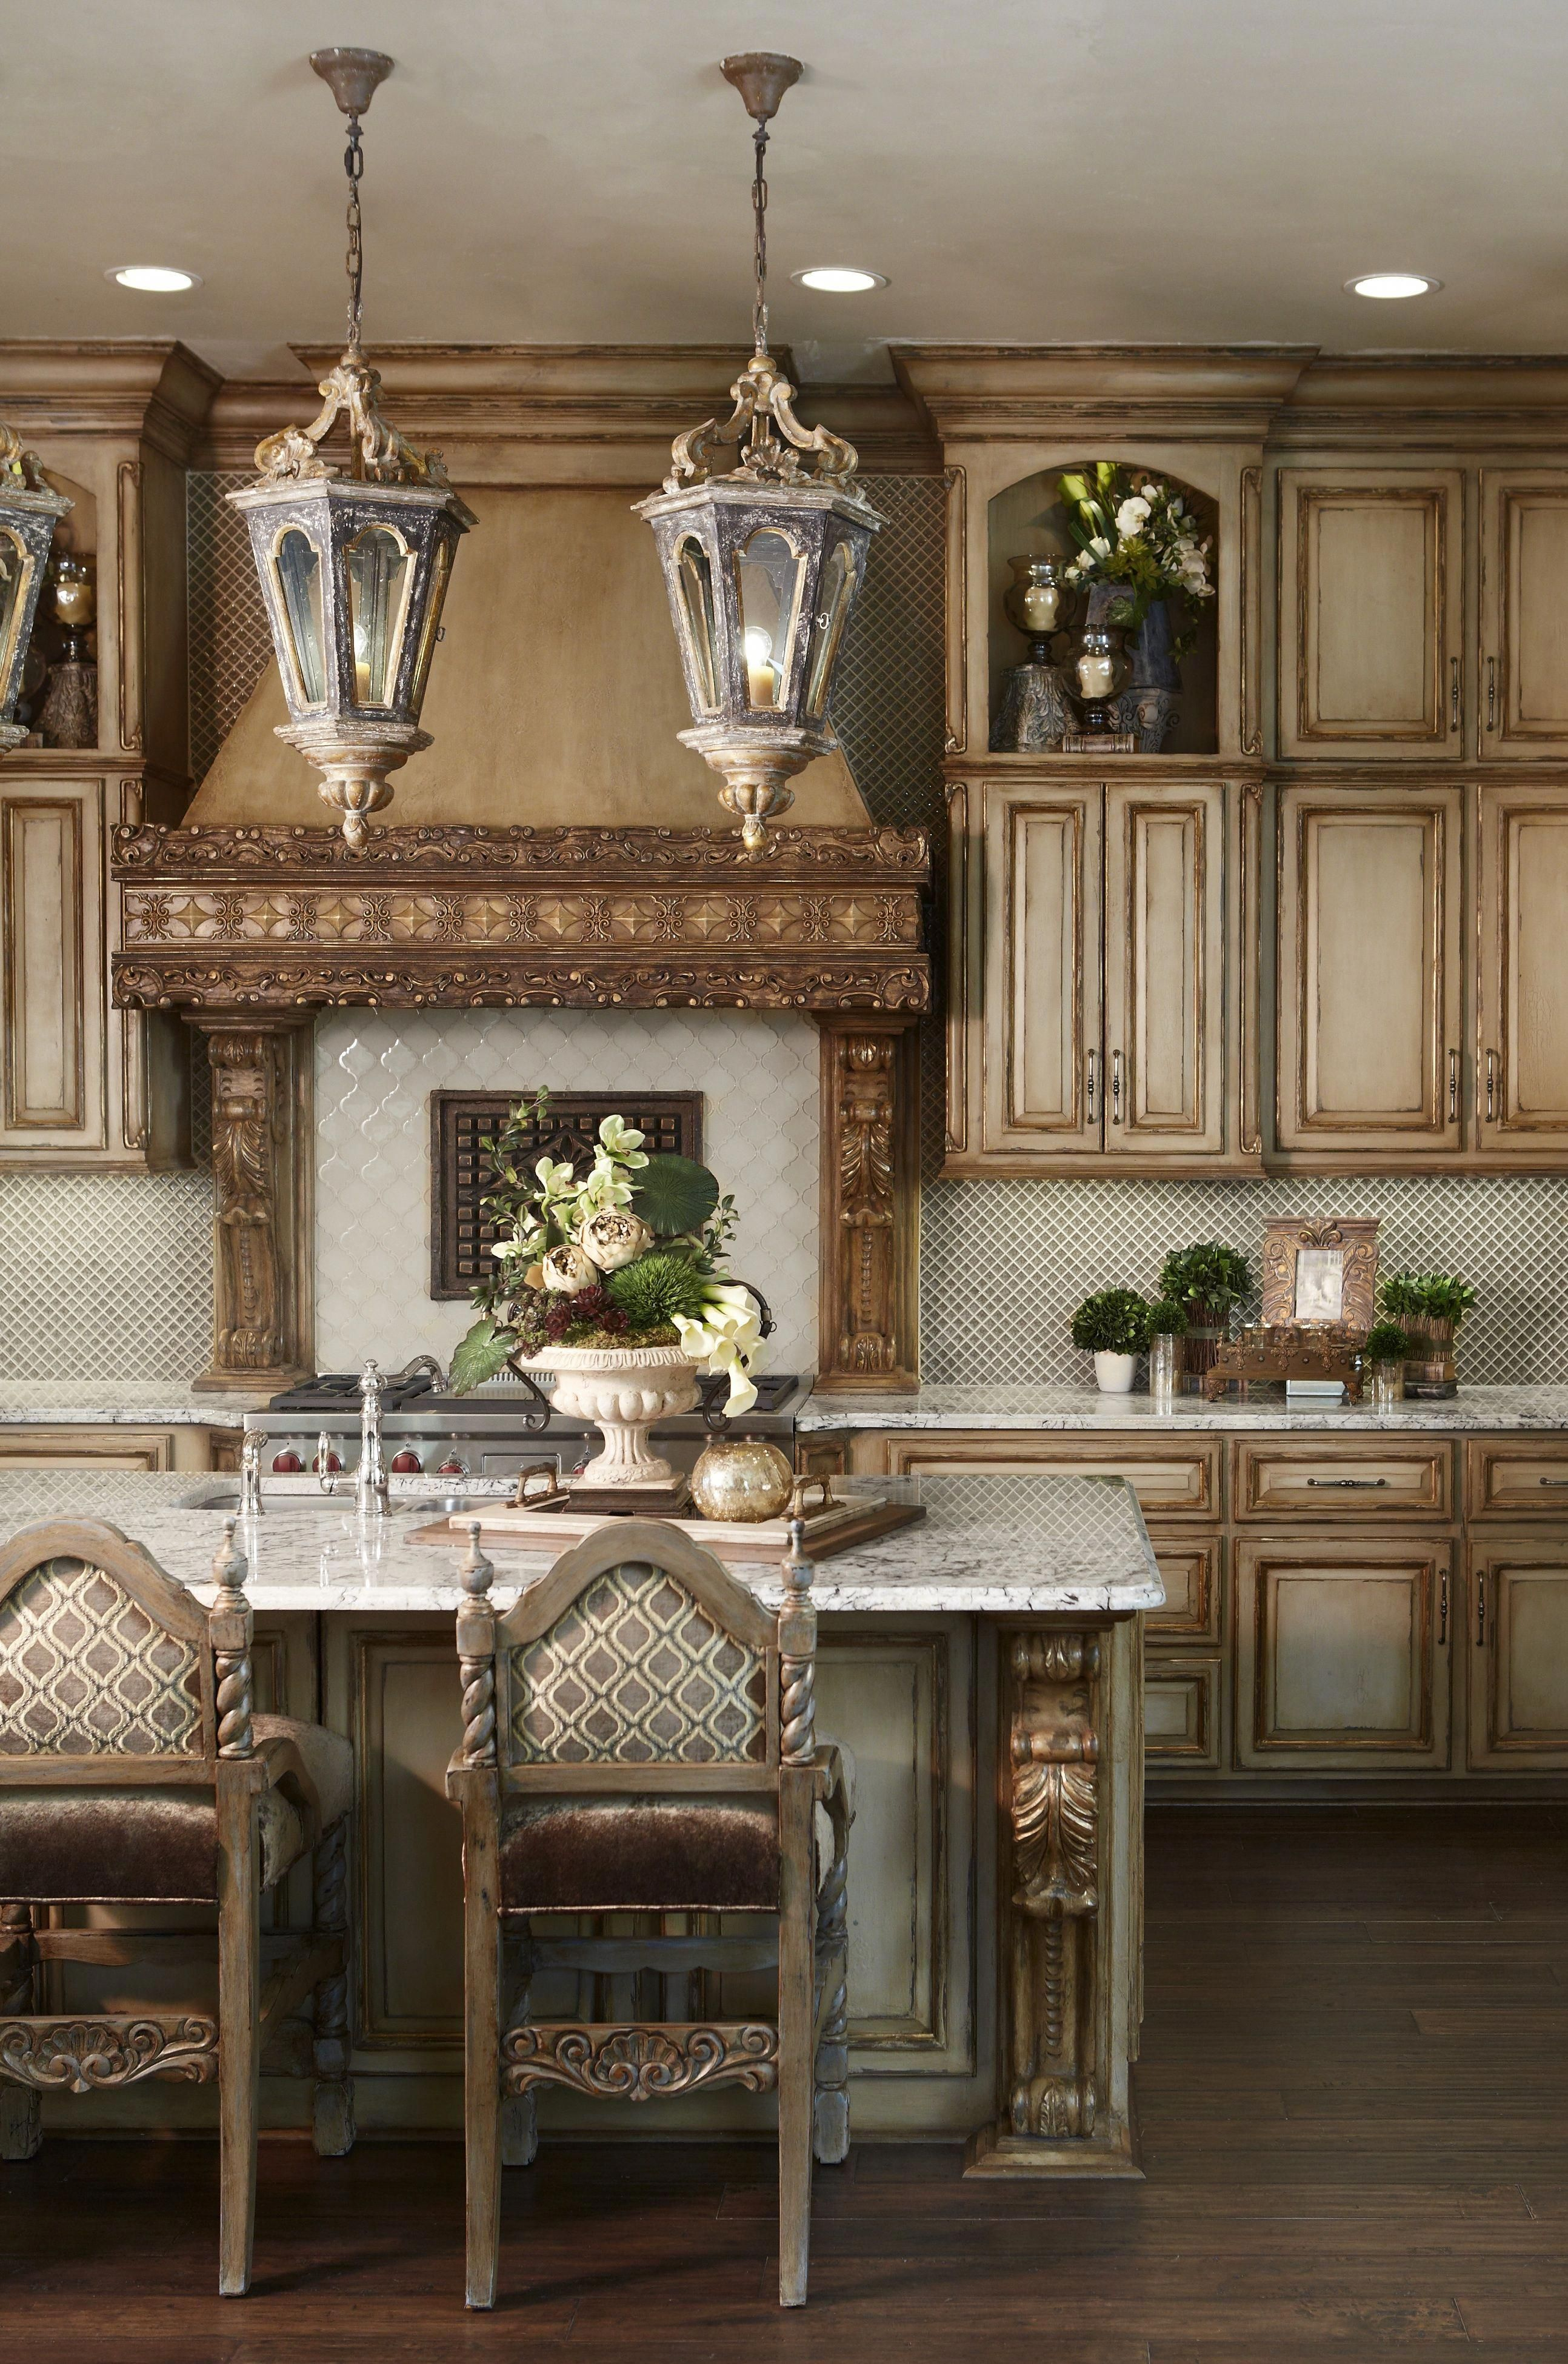 french country kitchens blue cabinets frenchcountrykitchens french country kitchens on kitchen remodel french country id=87108